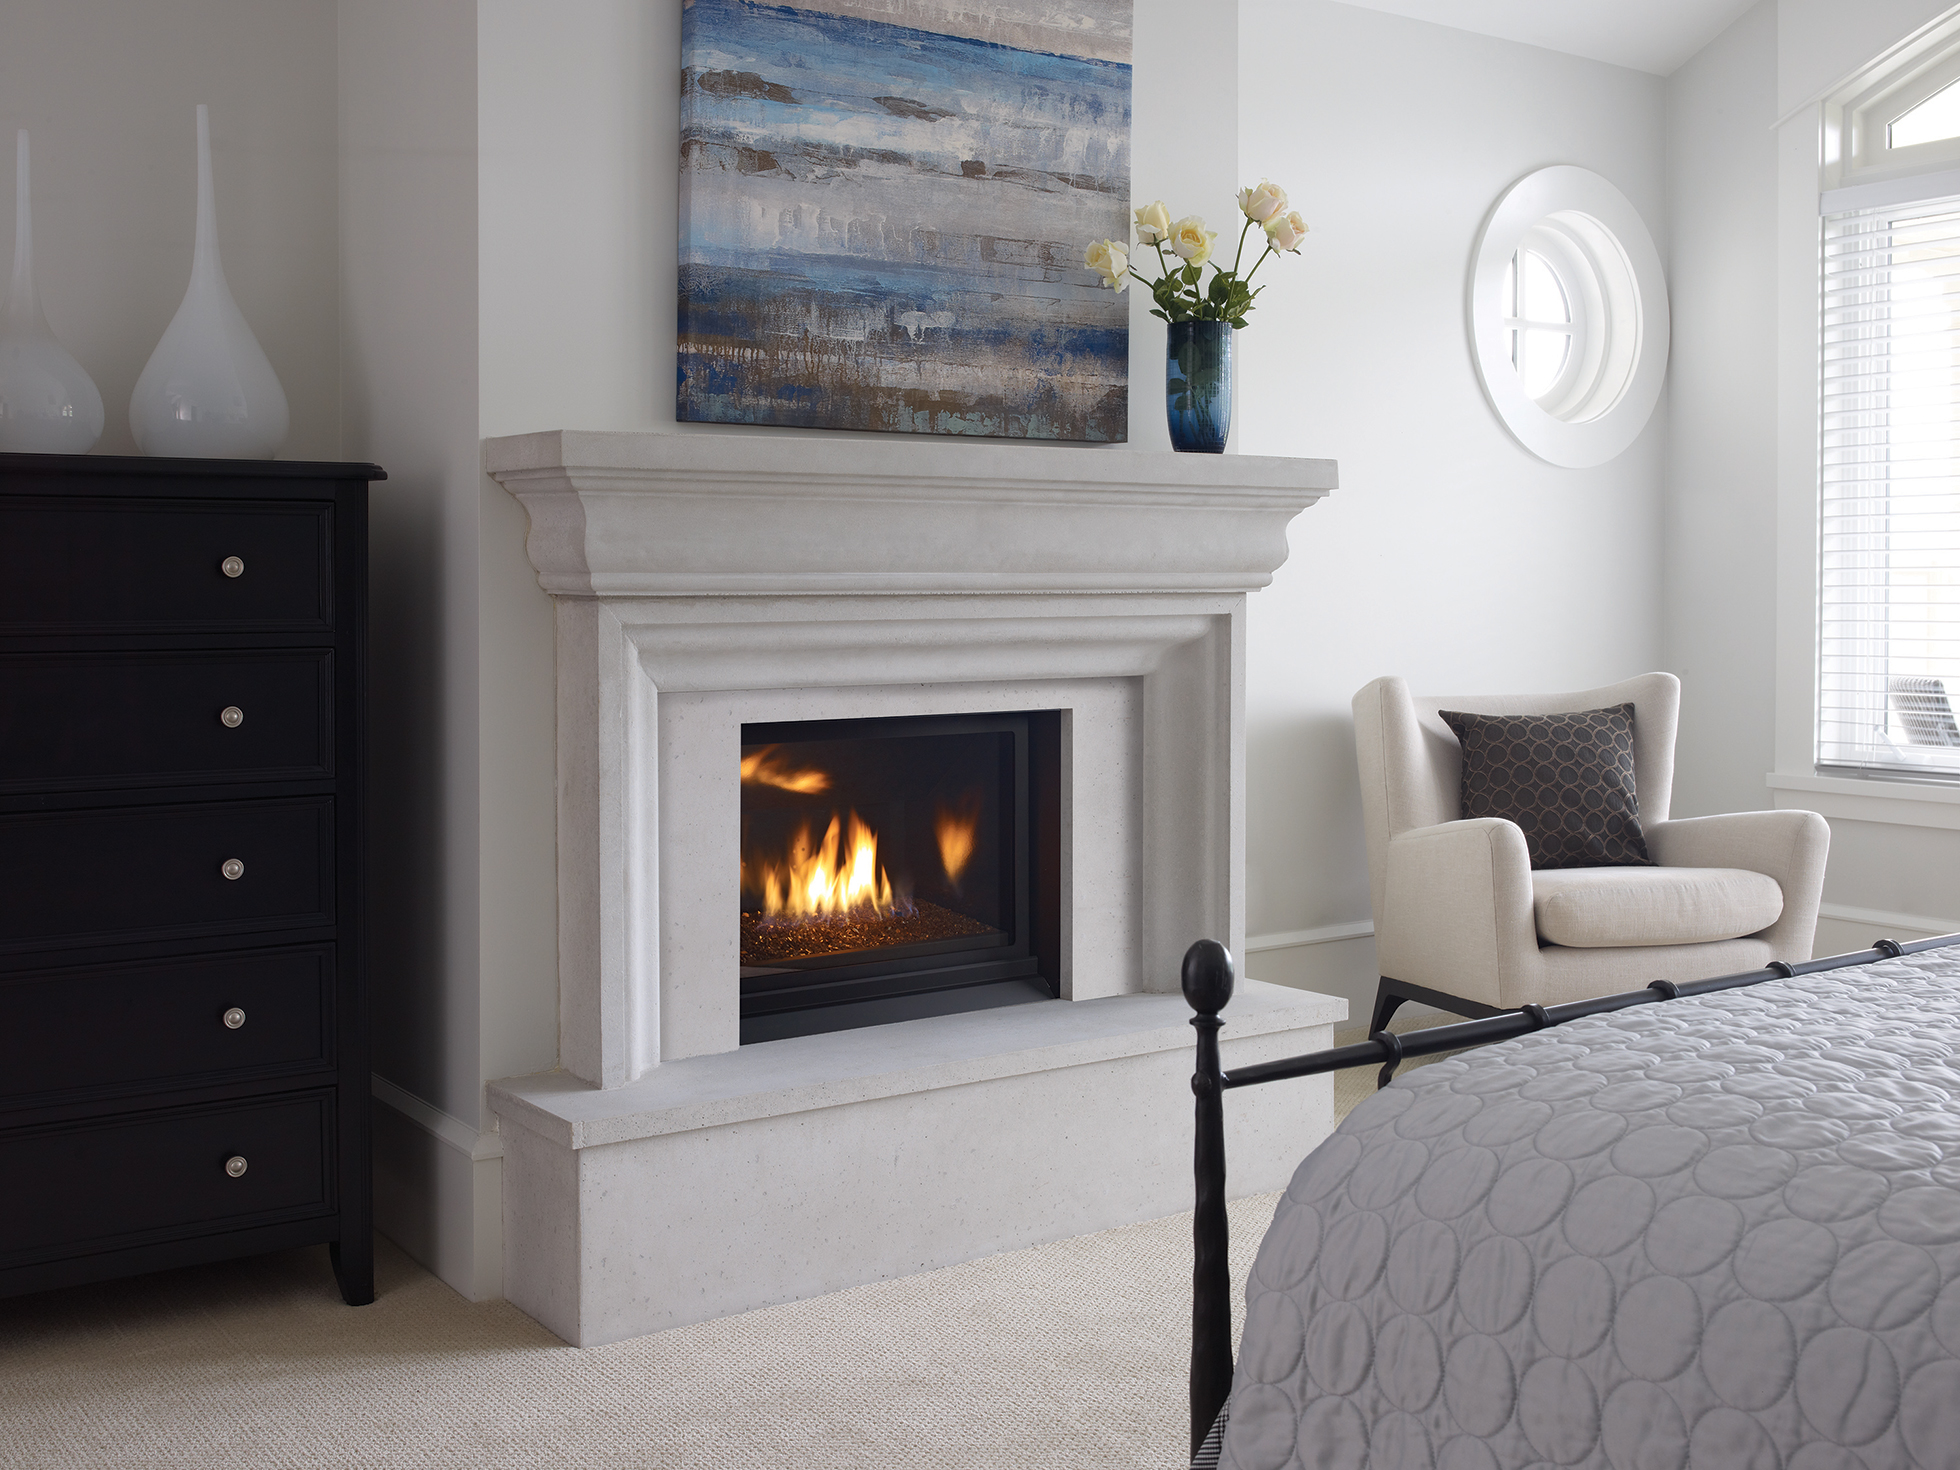 A fireplace that has been converted to gas heat